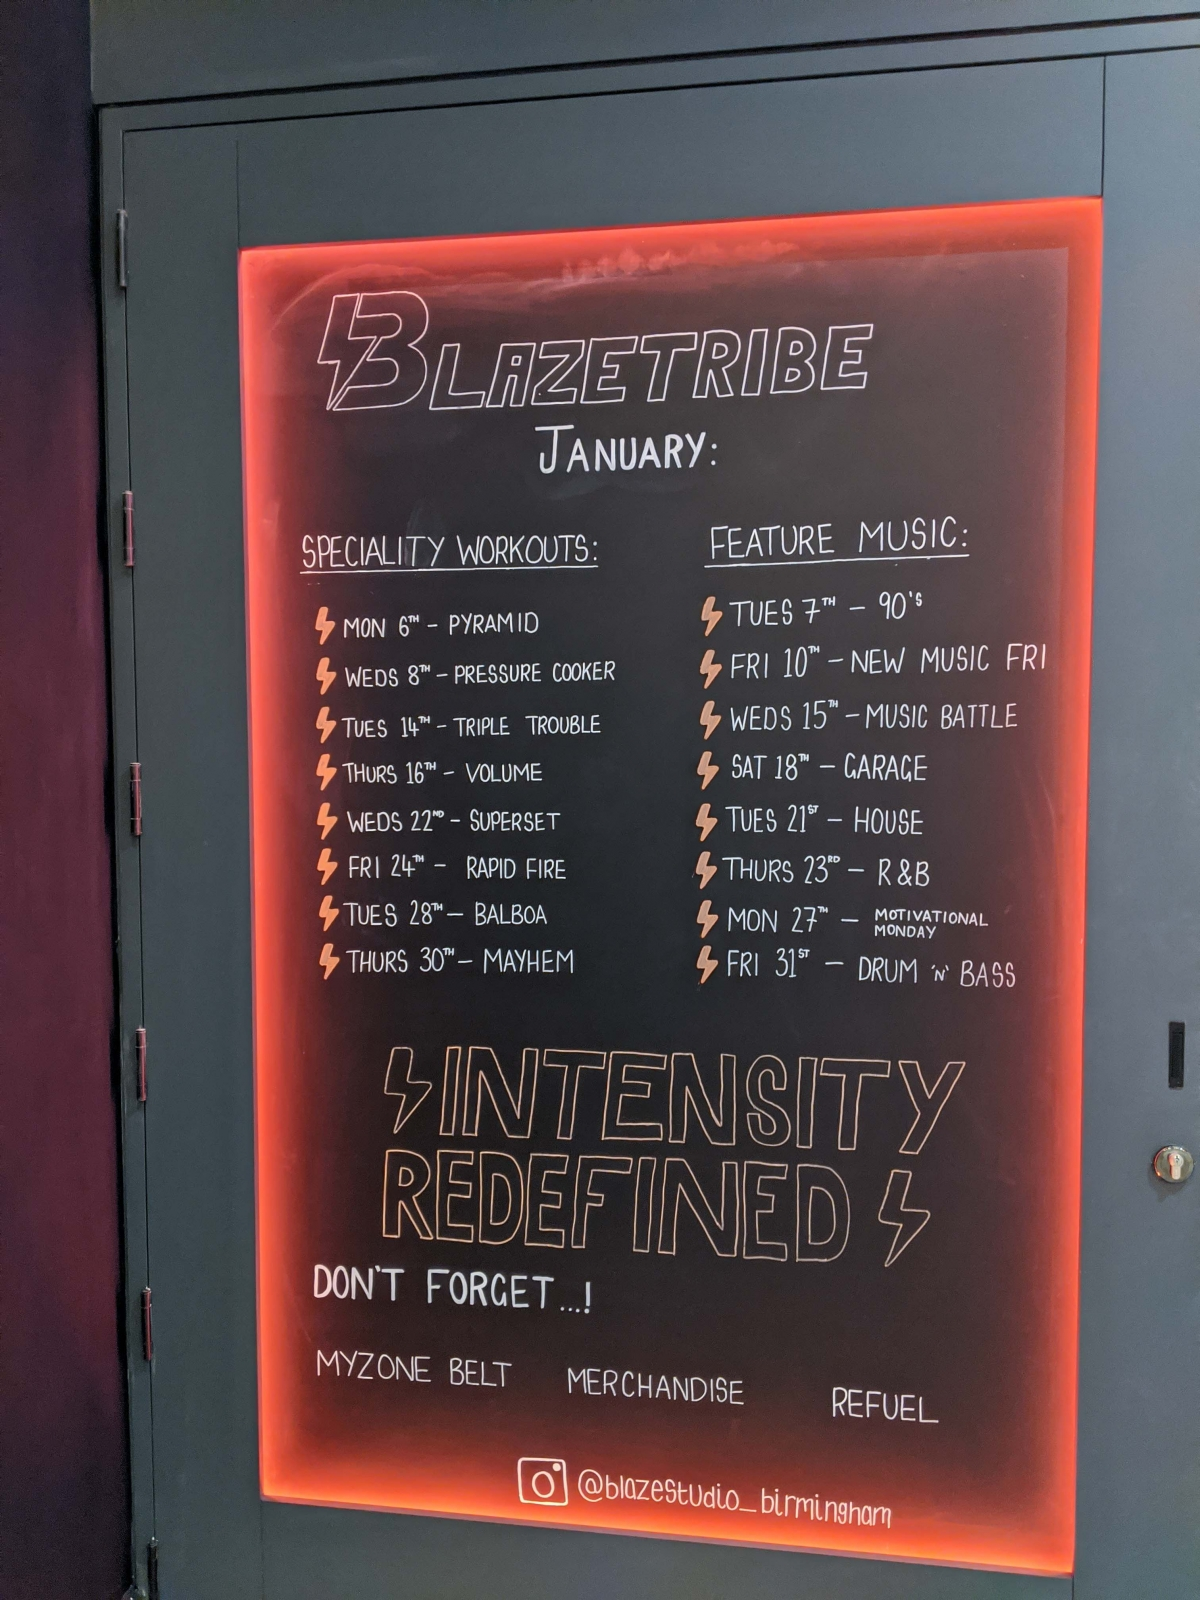 Blaze Studio Birmingham BlazeTribe music and speciality workout schedule on a black board